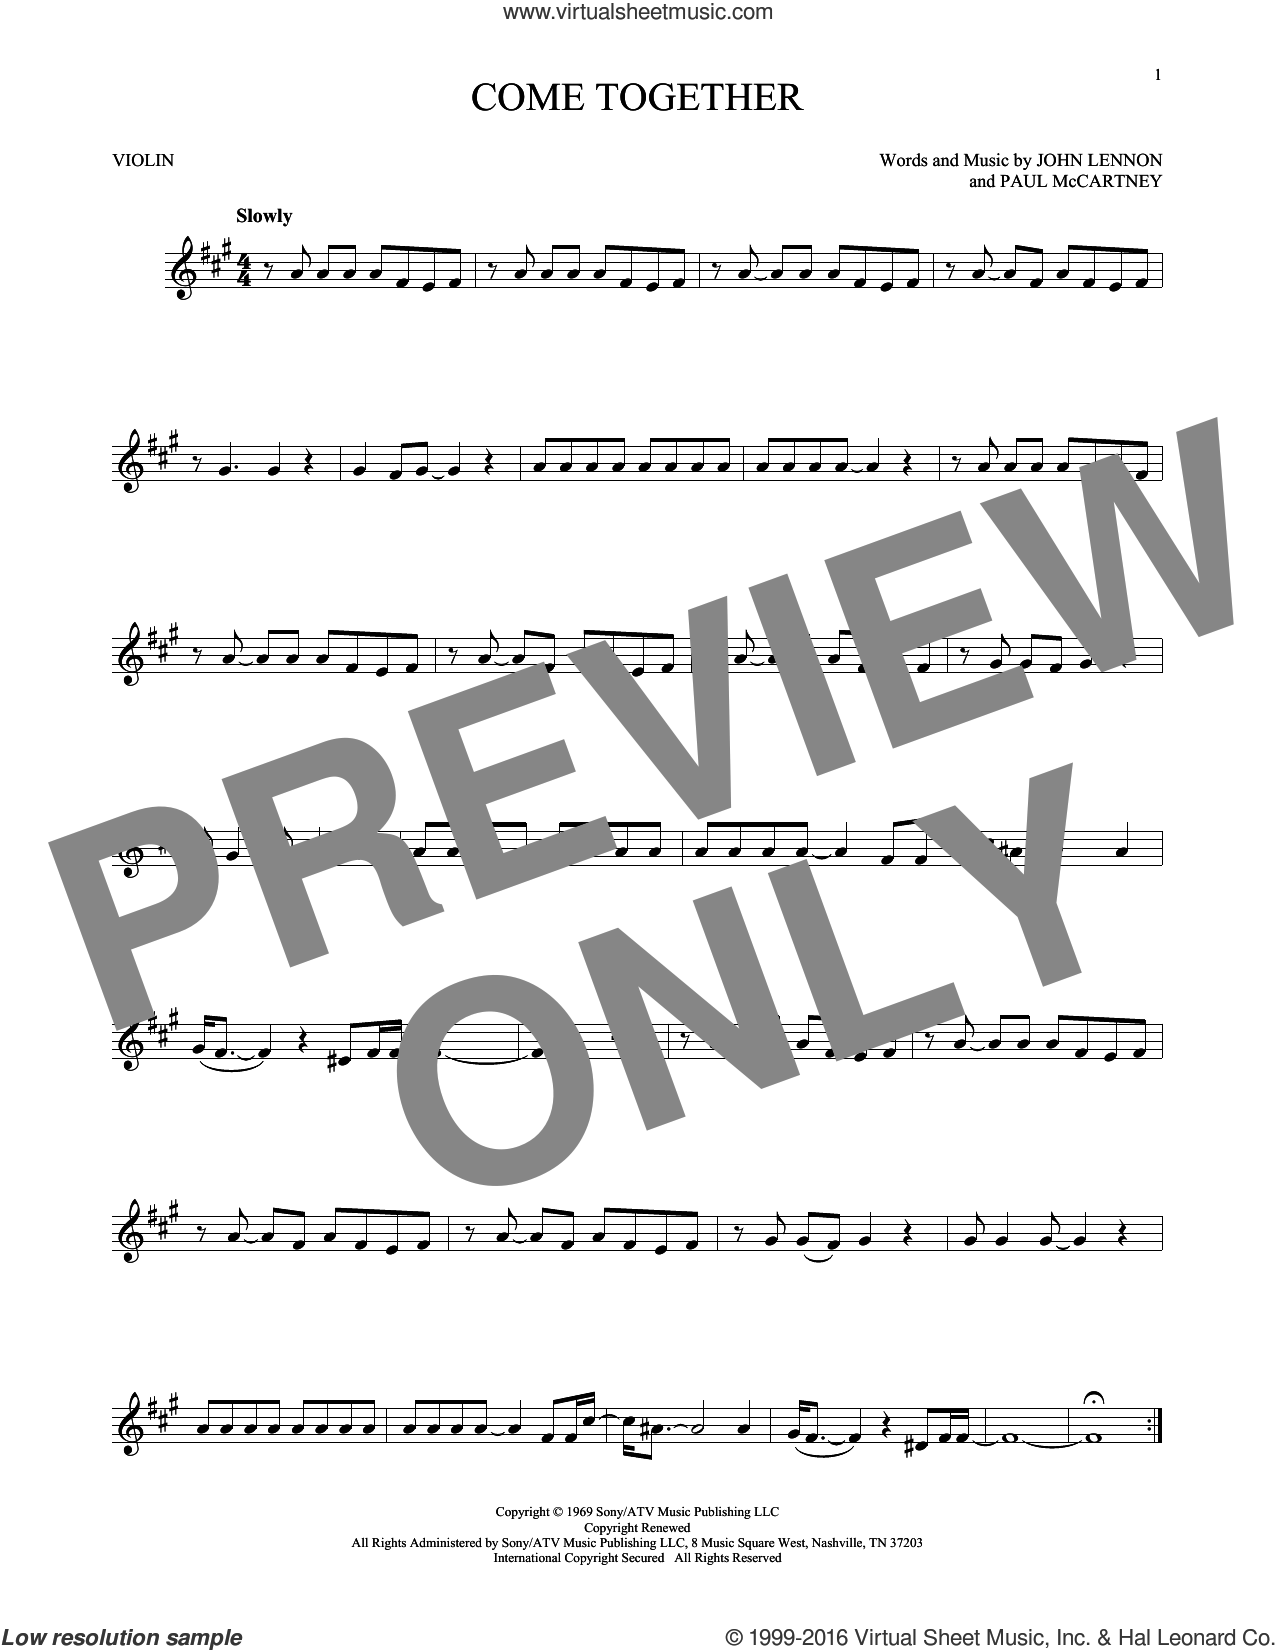 Come Together sheet music for violin solo by The Beatles, John Lennon and Paul McCartney, intermediate skill level